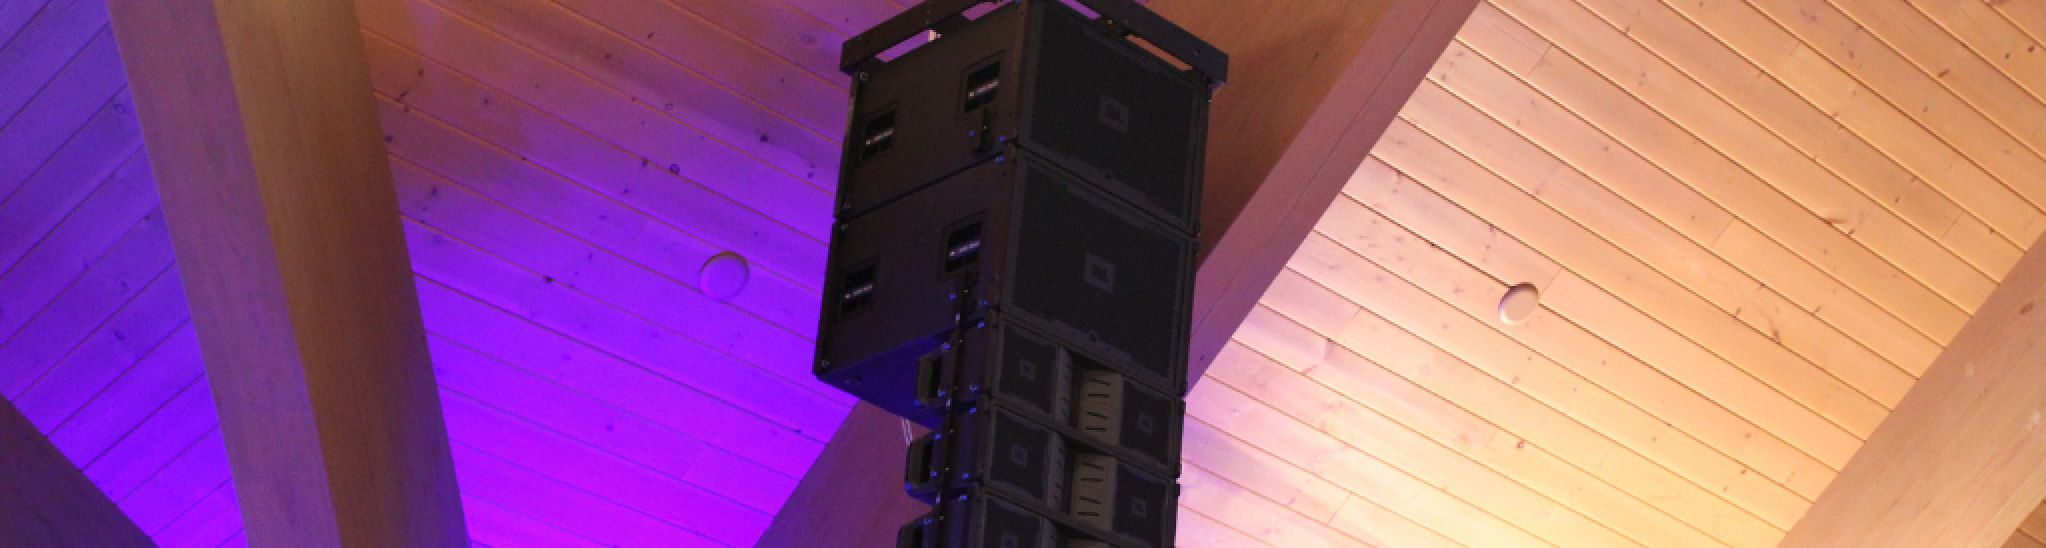 JBL Speaker at a corporate conference